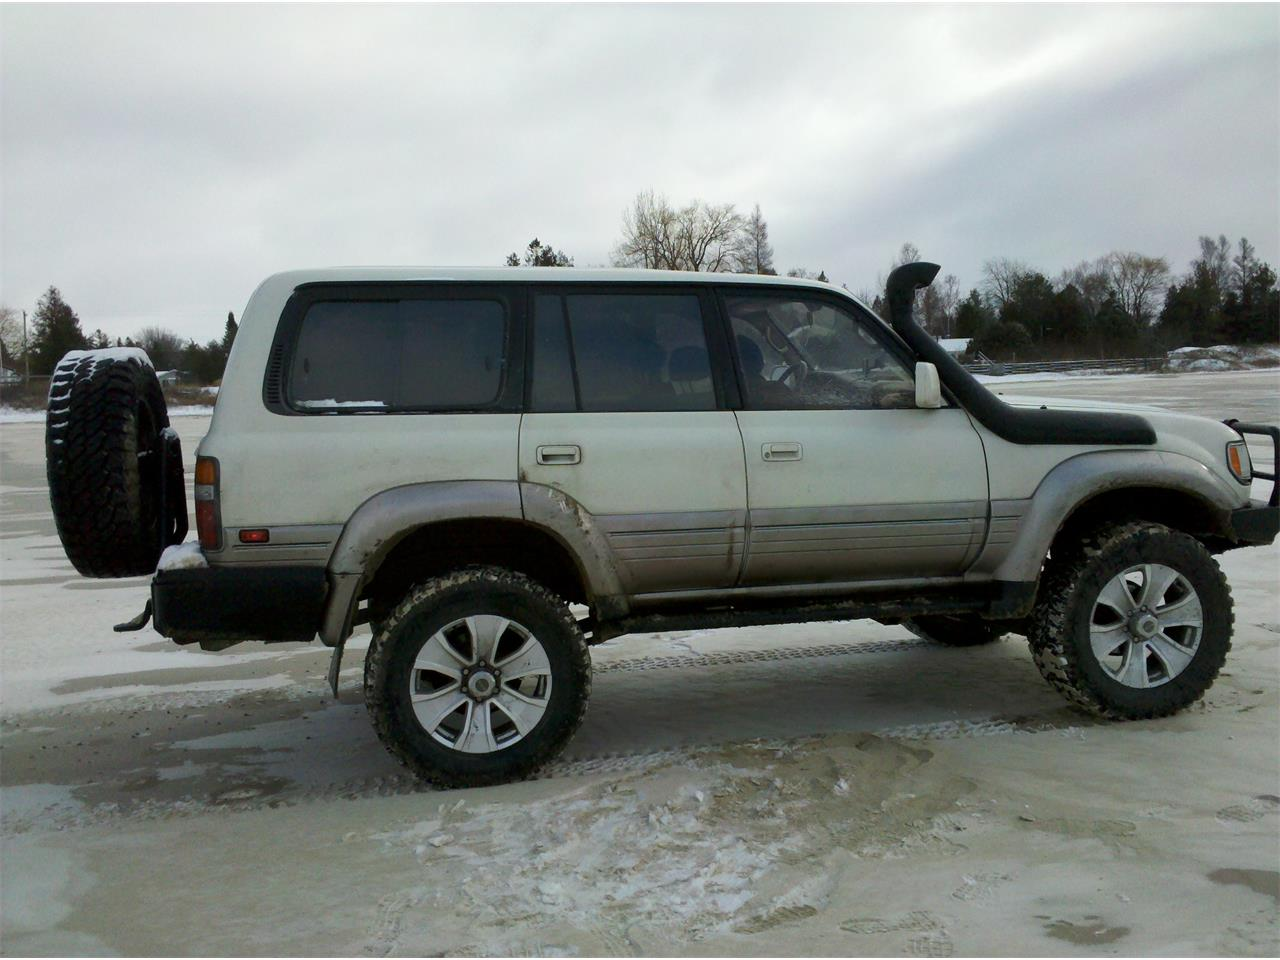 For Sale: 1997 Lexus LX450 in Thornhill, Ontario